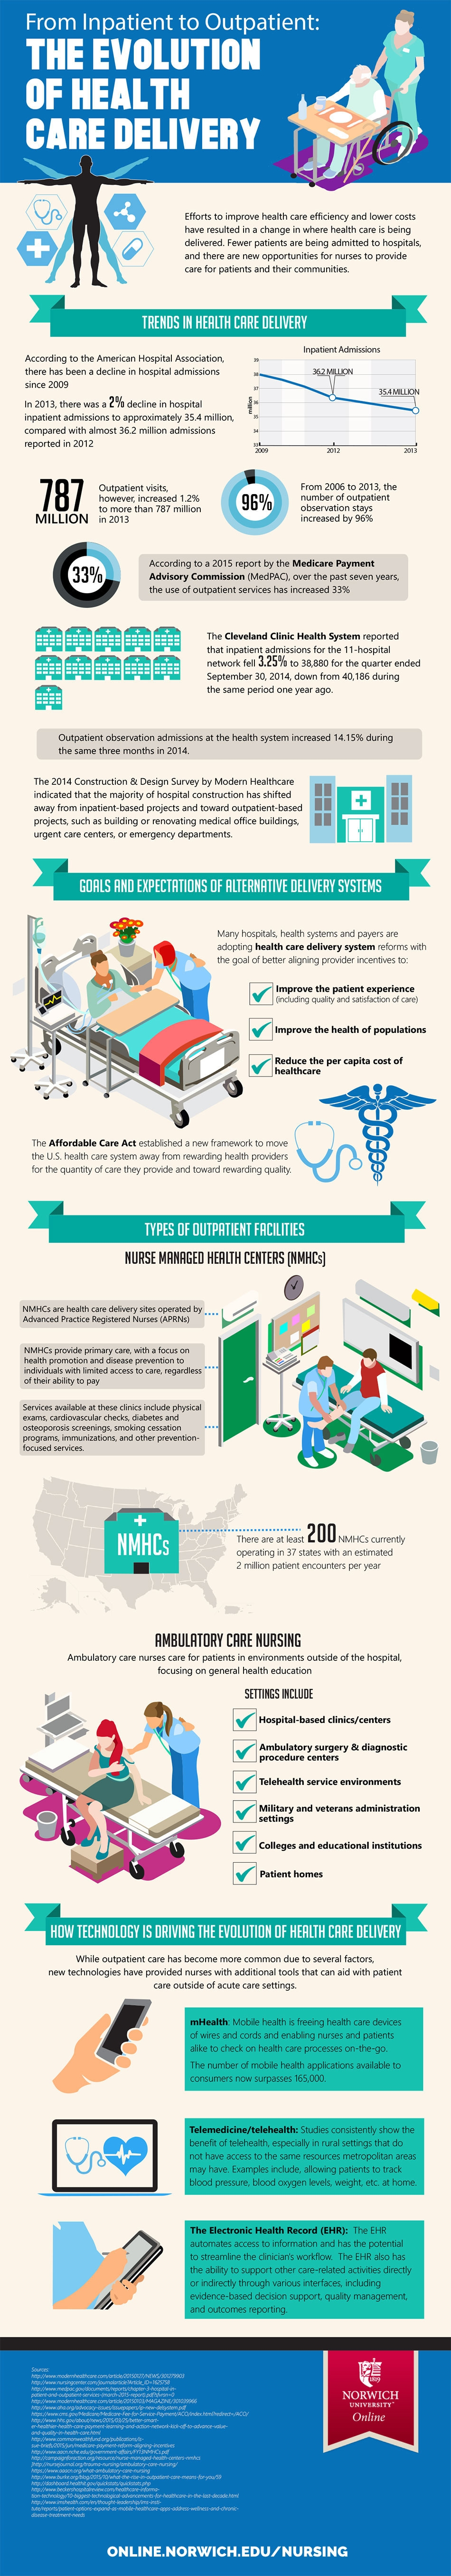 inpatient to outpatient infographic image